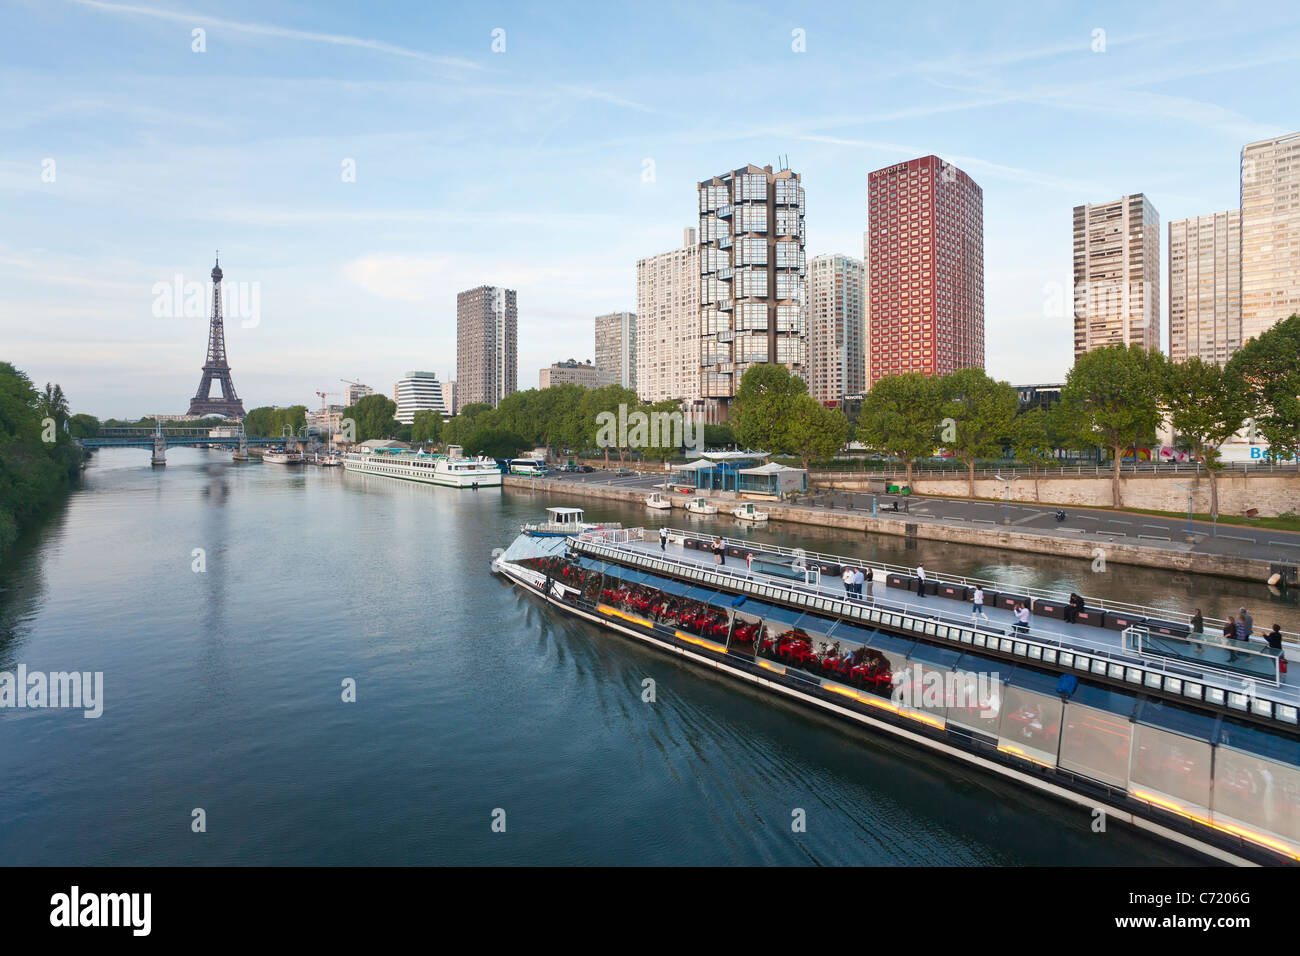 France, Paris, View Of River Seine With High-rise Buildings On The Left Bank And Eiffel Tower - Stock Image